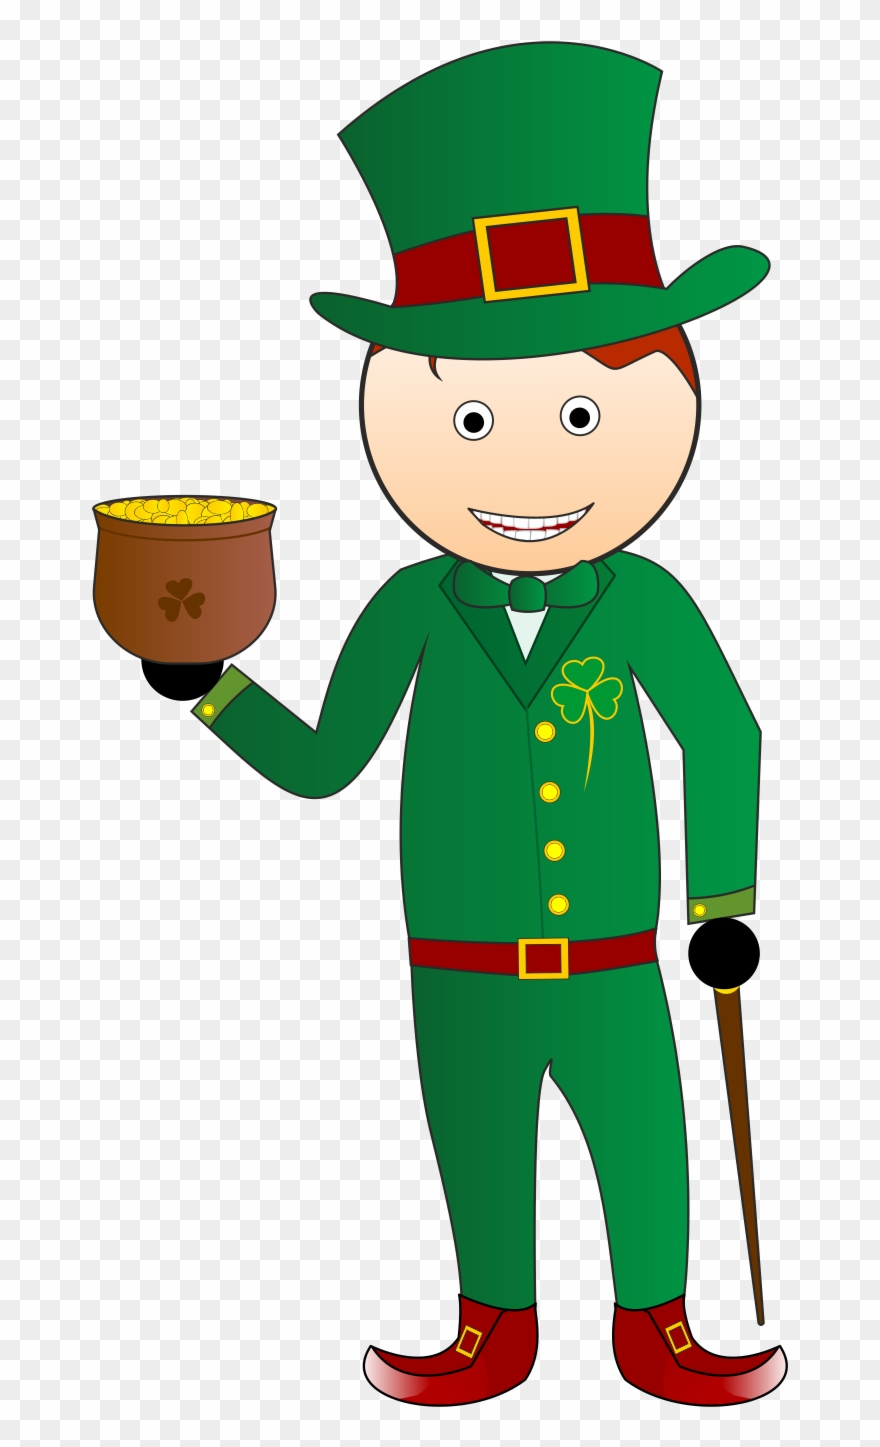 Catching a leprechaun clipart black and white clipart royalty free stock What If You Catch A Leprechaun - Saint Patrick\'s Day Clipart - Full ... clipart royalty free stock